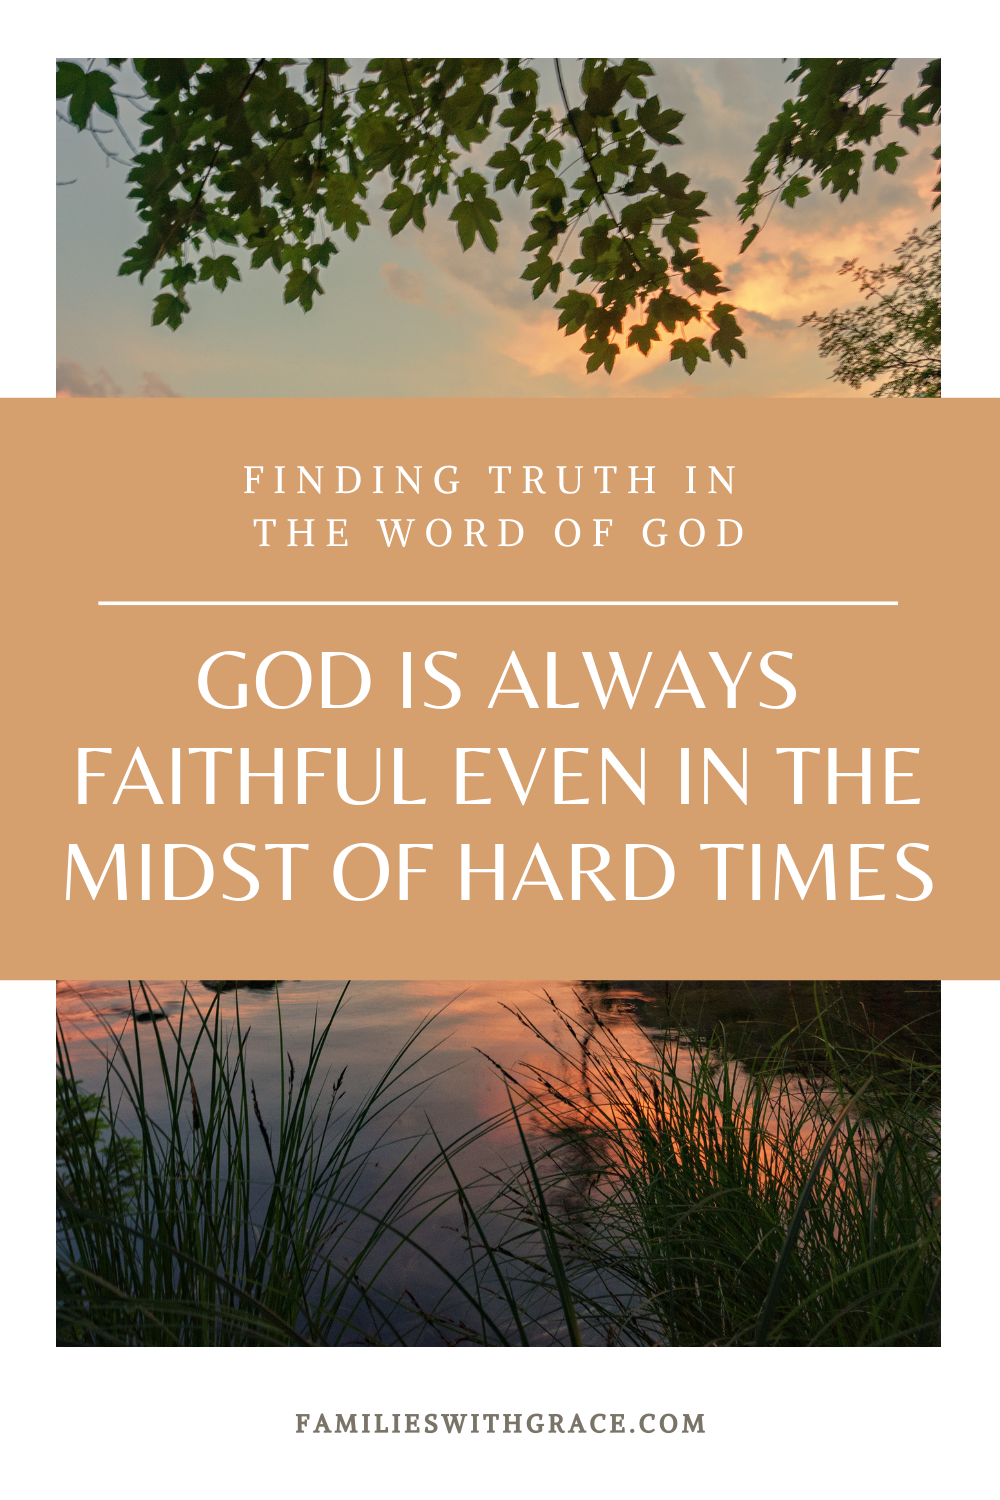 God is always faithful even in the midst of hard times